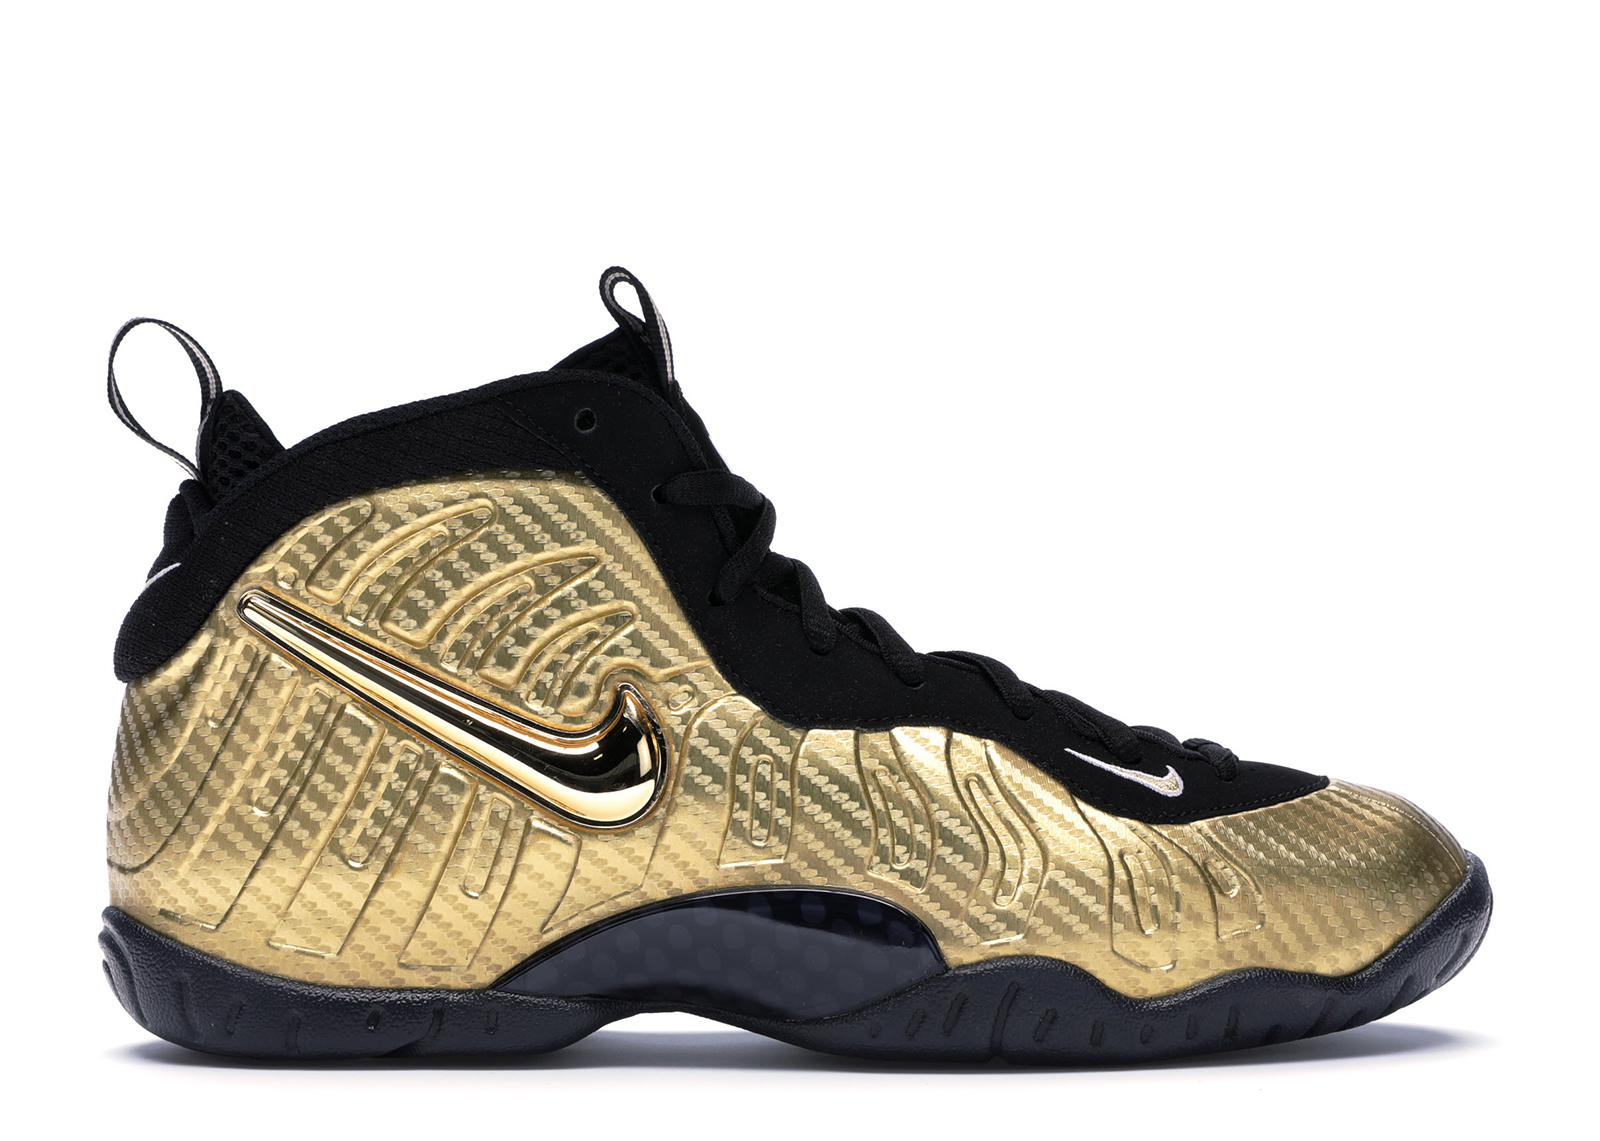 save off d5b44 dcd47 release date air nike foamposite pro metallic gold gs 644792 701 0c9d6 7a3ab